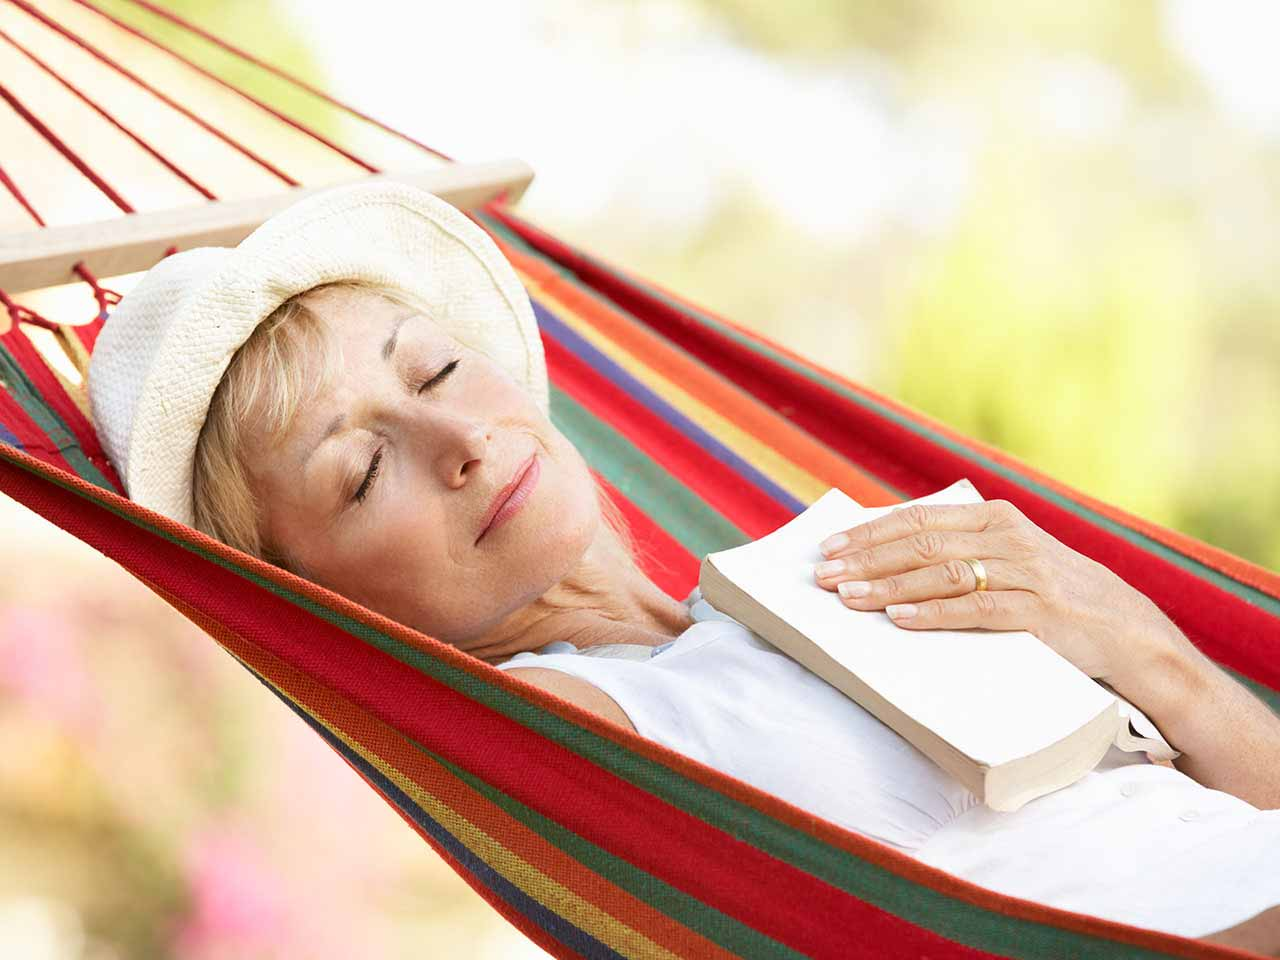 Mature woman dozing in a hammock